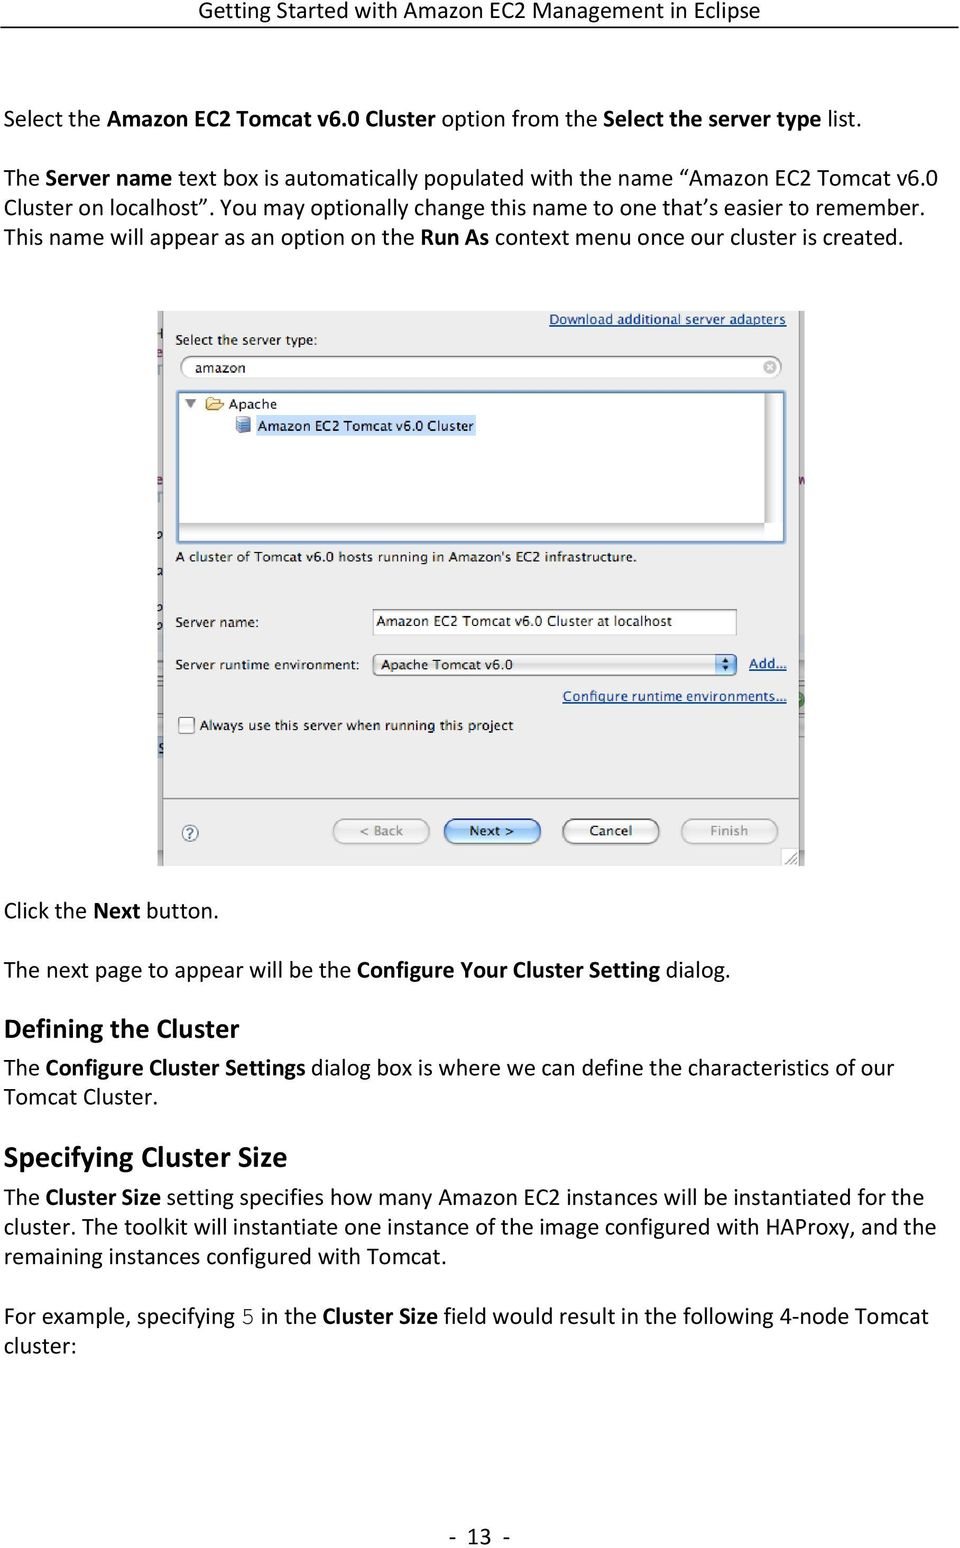 The next page to appear will be the Configure Your Cluster Setting dialog.